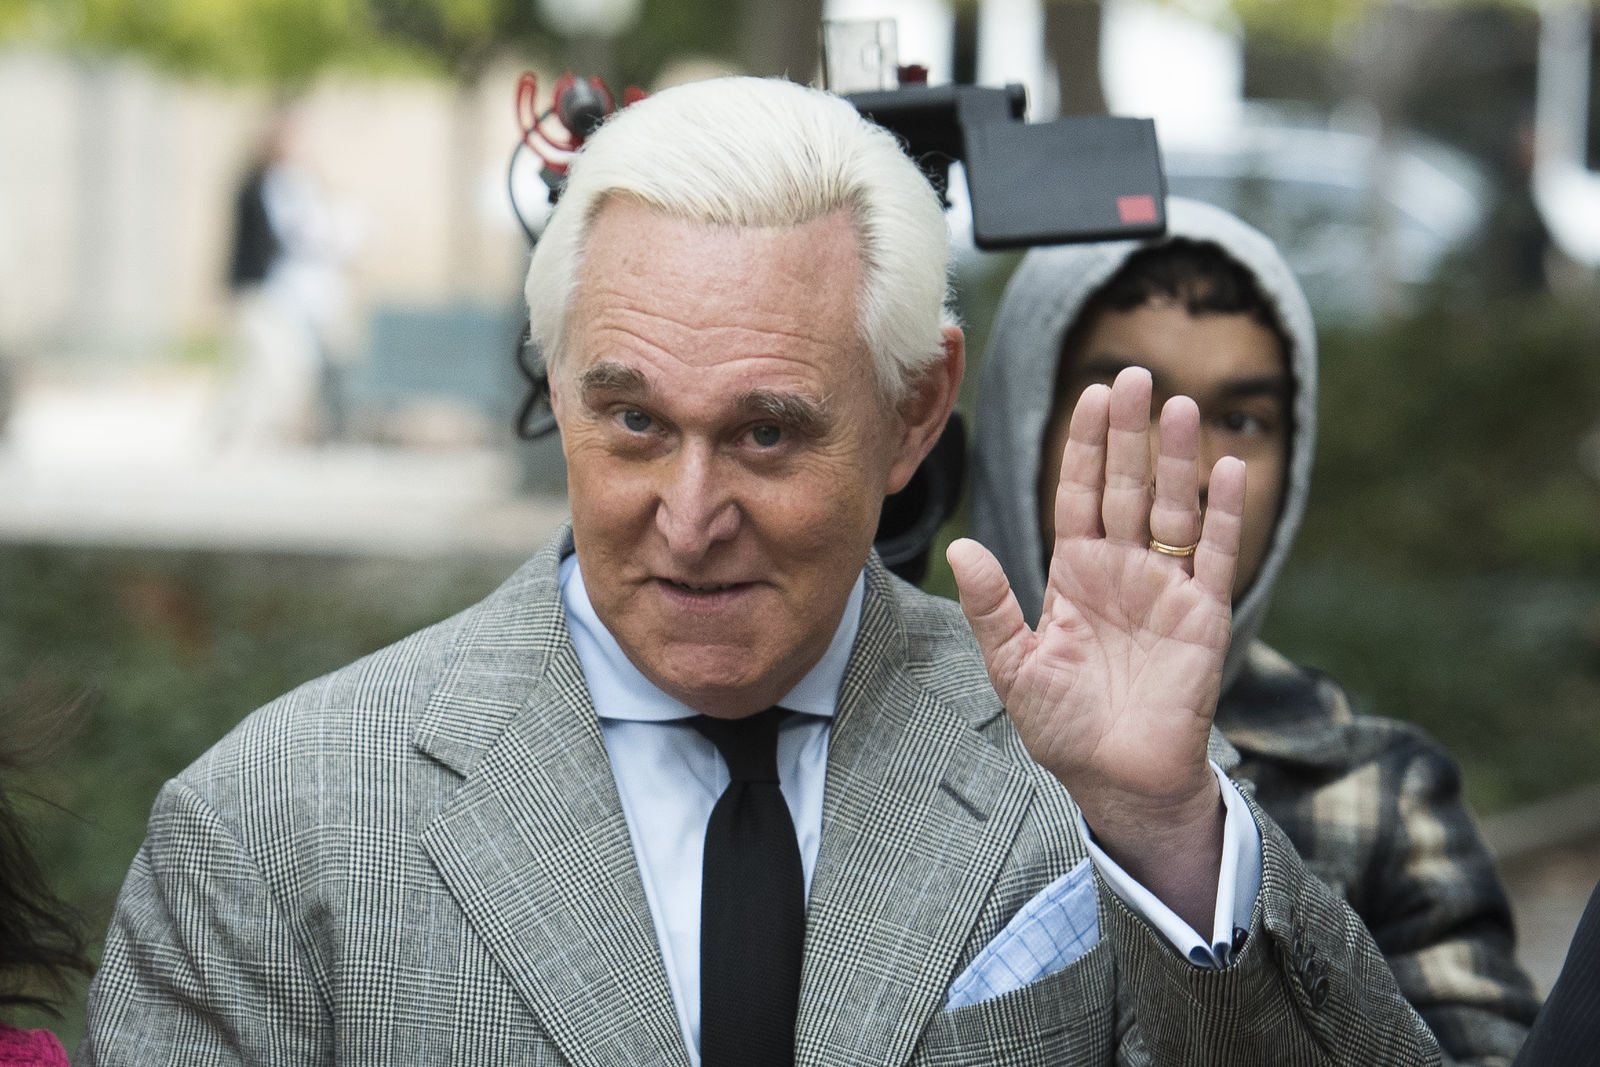 "FILE - In this Nov. 7, 2019 file photo, Roger Stone arrives at Federal Court for his federal trial in Washington.  The Justice Department said Tuesday it will take the extraordinary step of lowering the amount of prison time it will seek for Roger Stone, an announcement that came just hours after President Donald Trump complained that the recommended sentence for his longtime ally and confidant was ""very horrible and unfair.""  (AP Photo/Cliff Owen)"